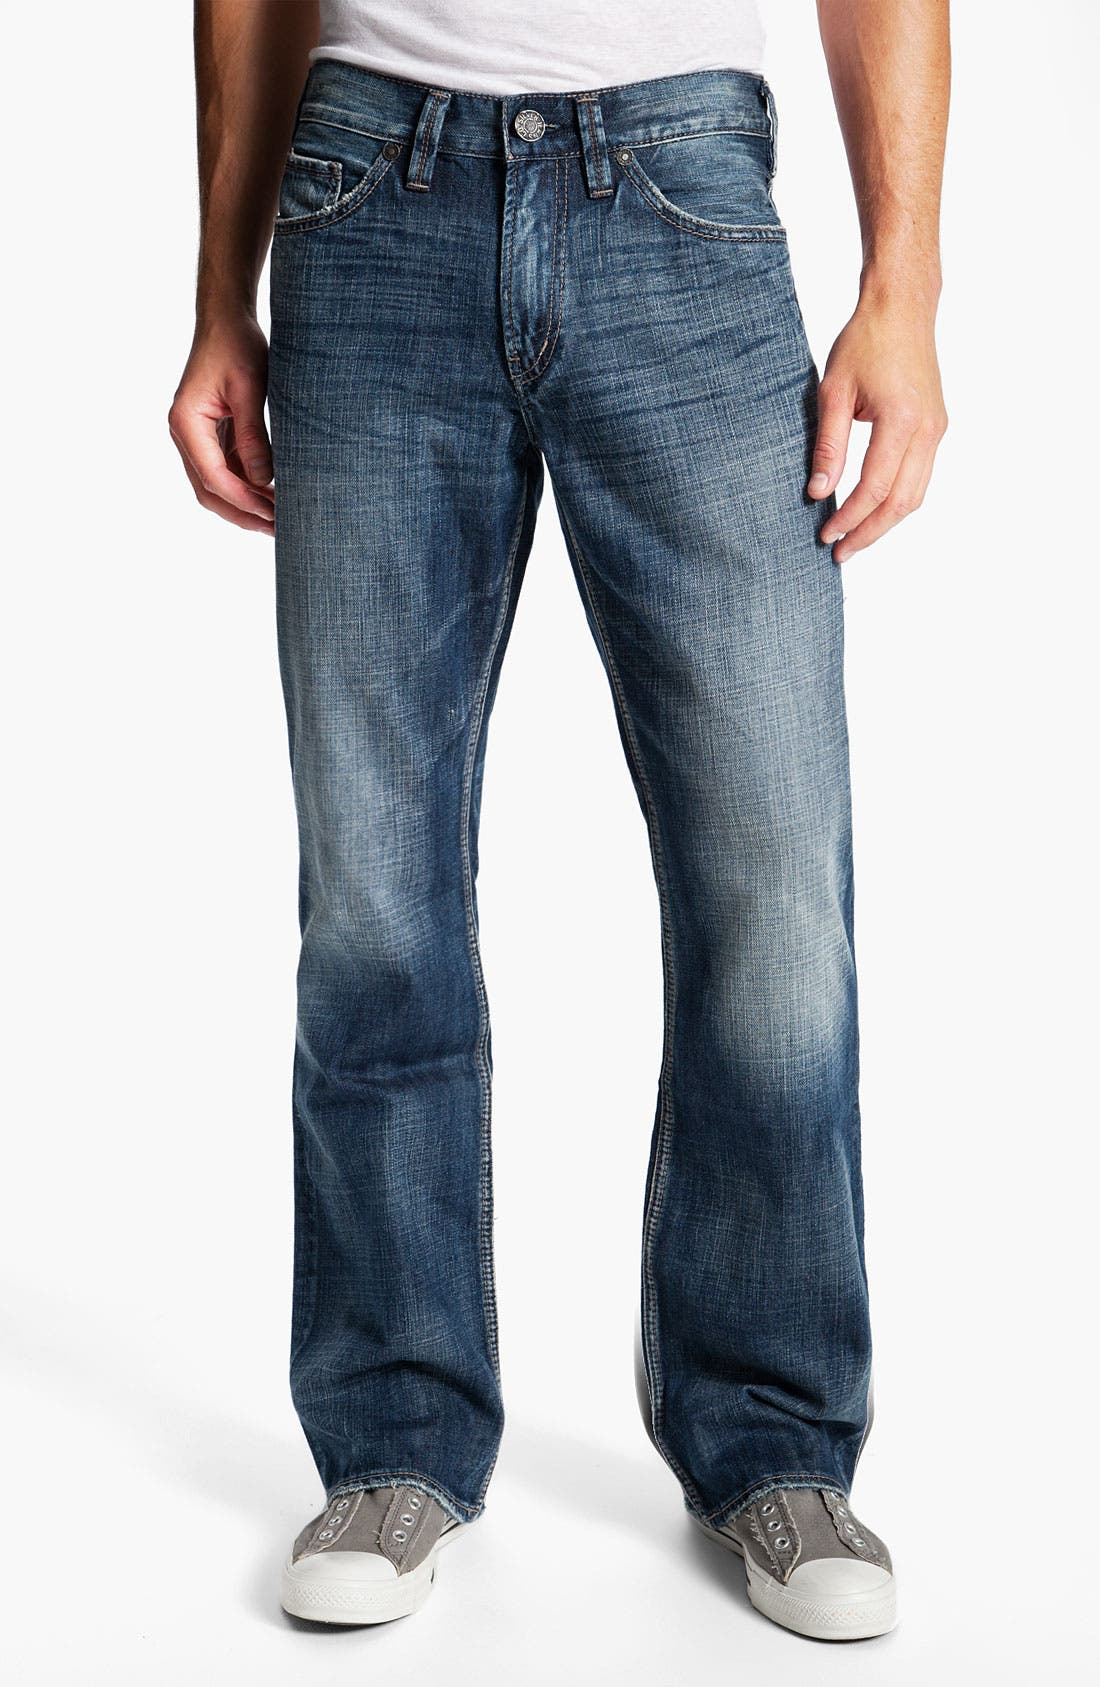 Alternate Image 2  - Silver Jeans Co. 'Grayson' Relaxed Bootcut Jeans (Indigo)